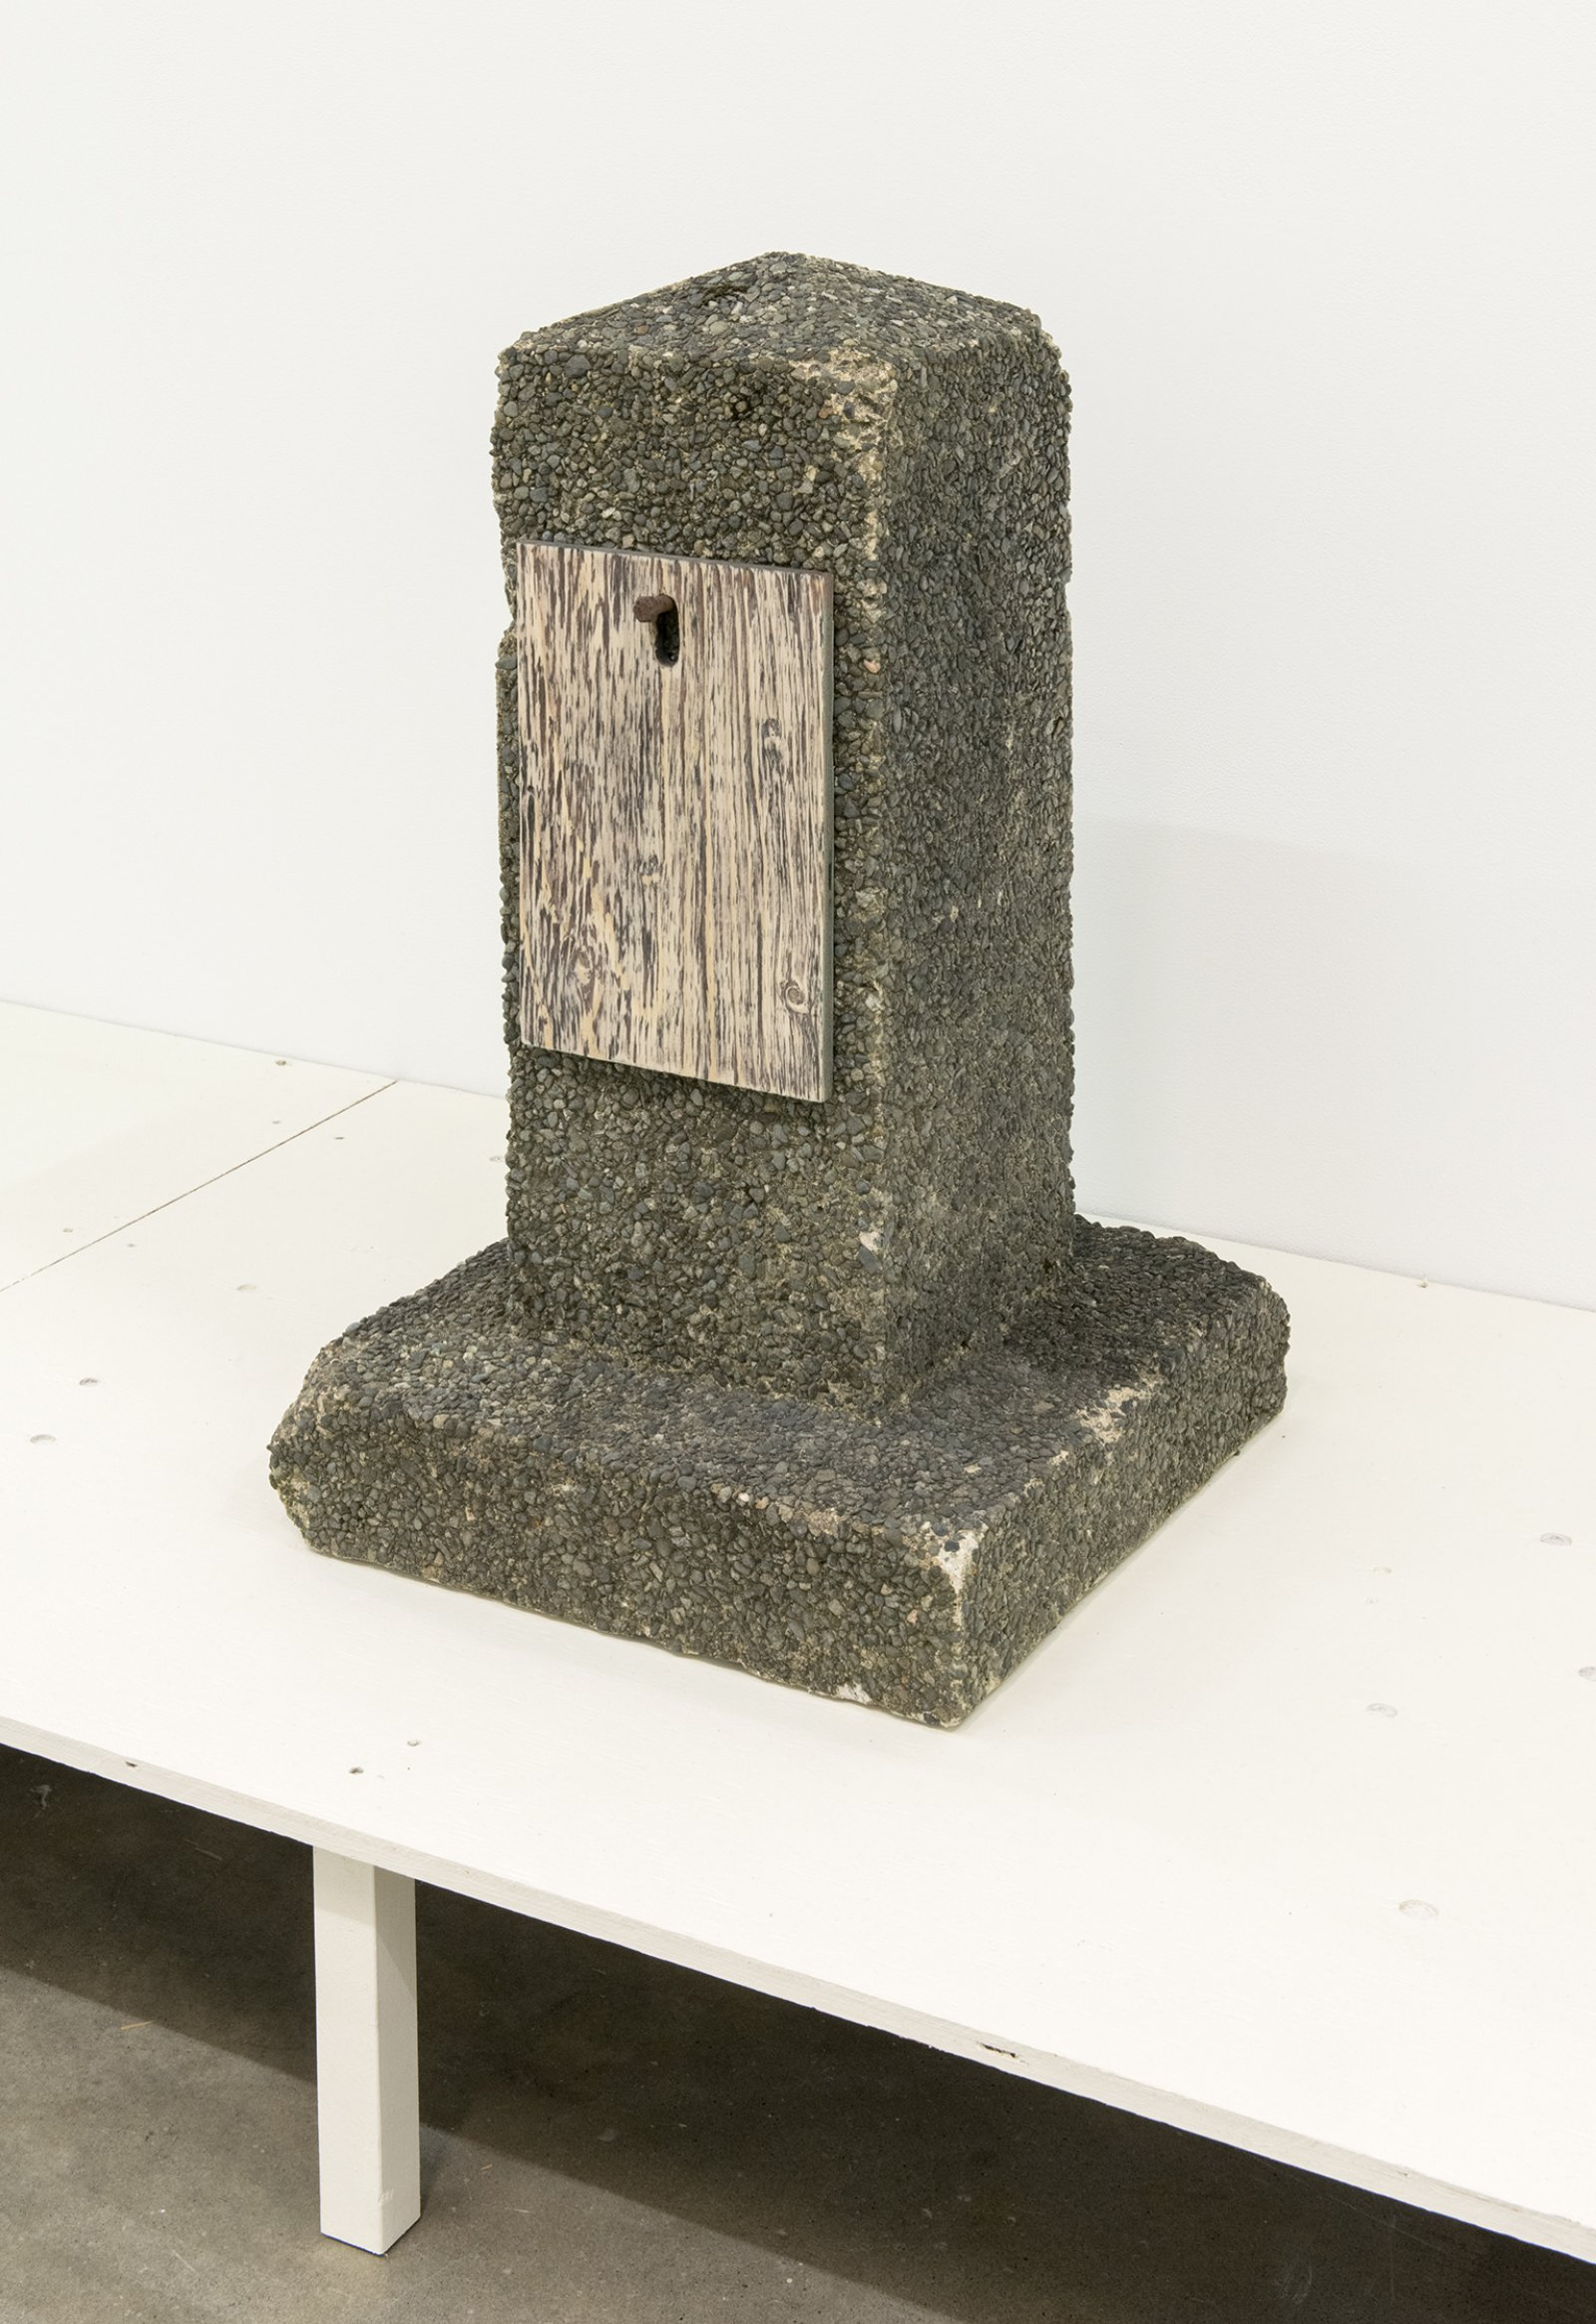 Gareth Moore, AC-01 WP, 2013, aggregate, concrete, steel, wood, paint, 31 x 18 x 18 in. (79 x 46 x 46 cm)   by Ashes Withyman